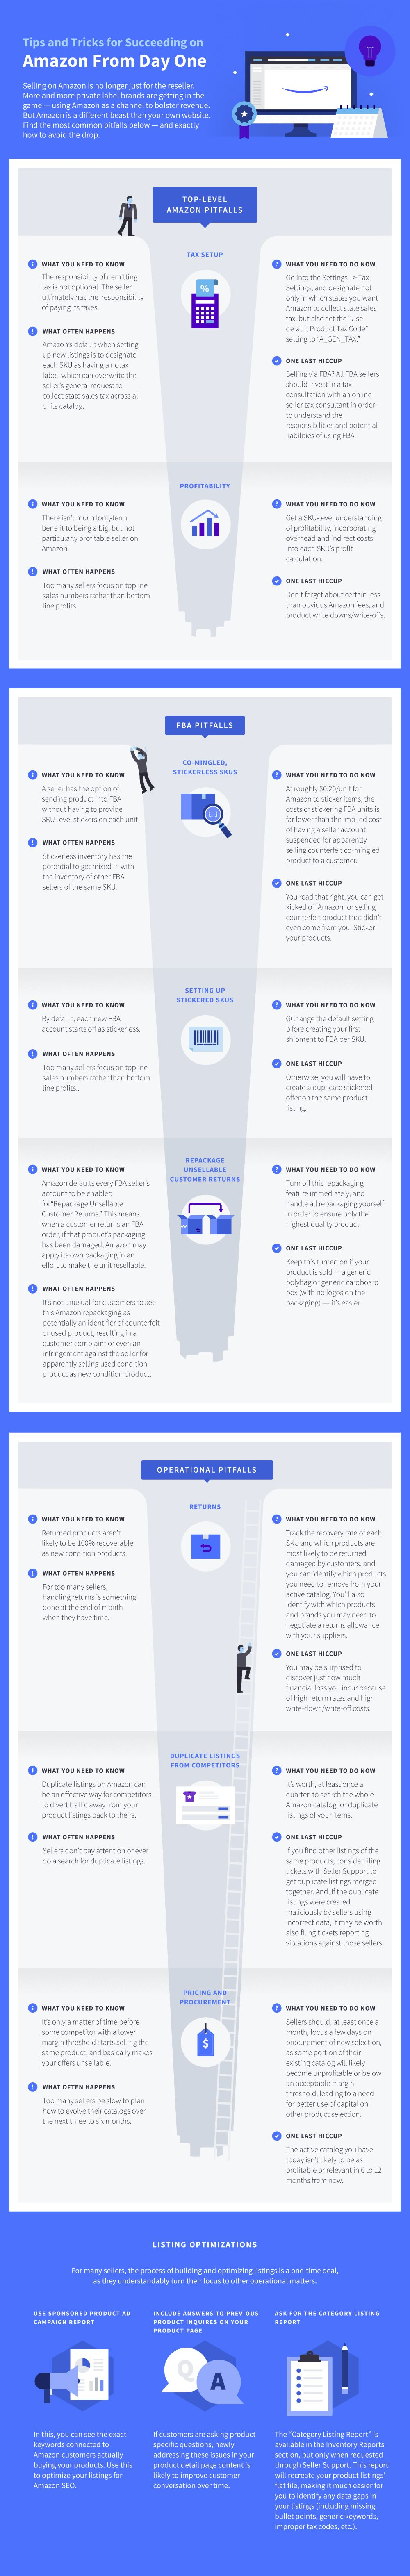 Tips And Tricks For Succeeding On Amazon From Day One #Infographic